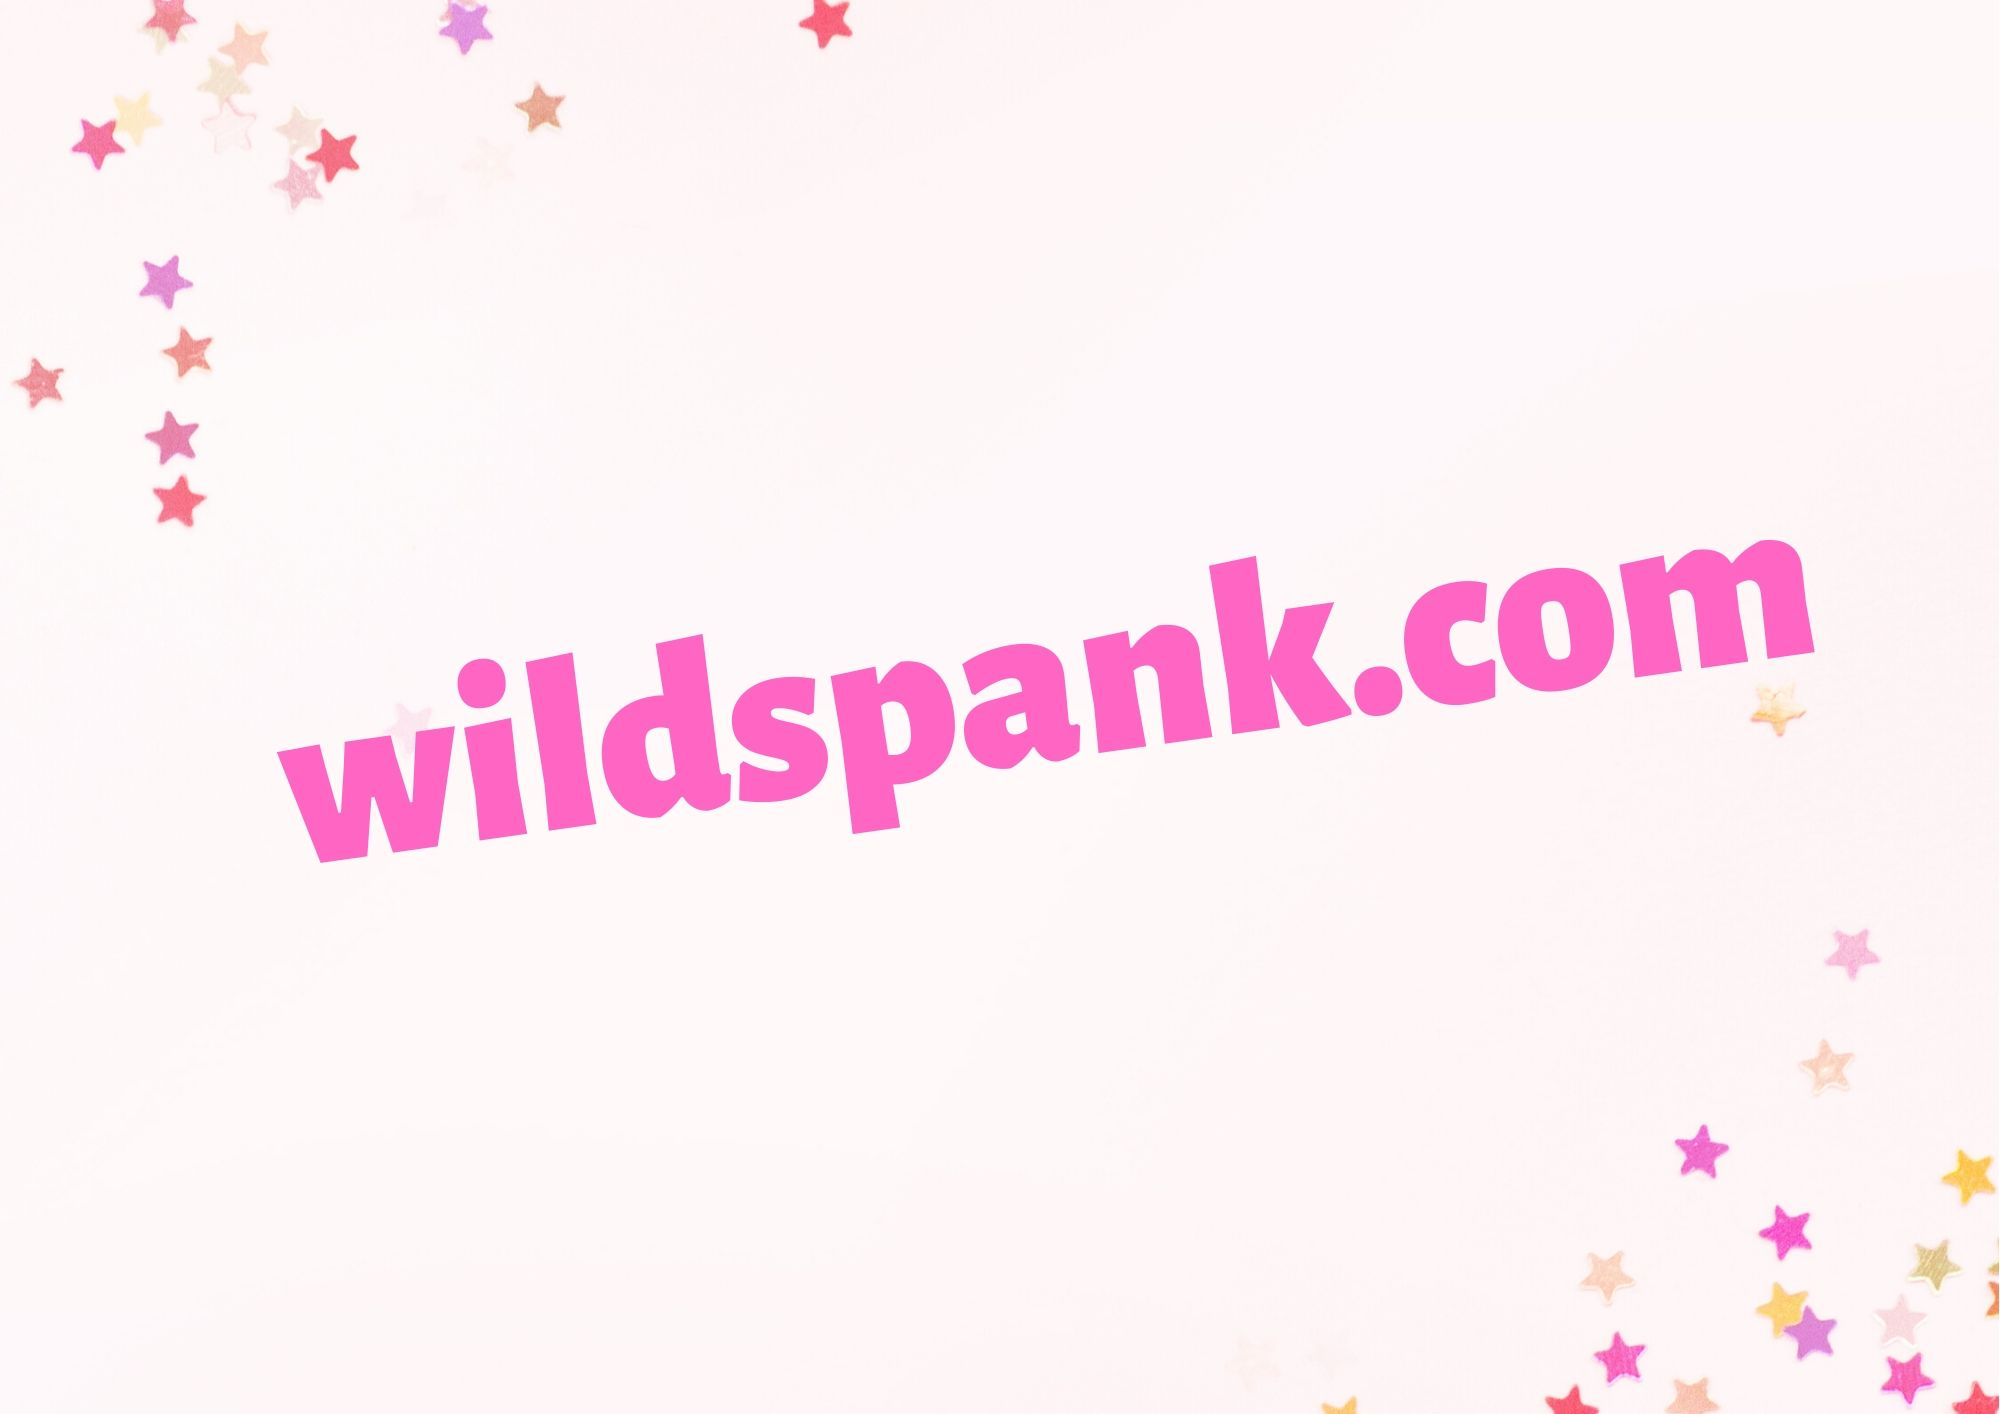 wildspank.com